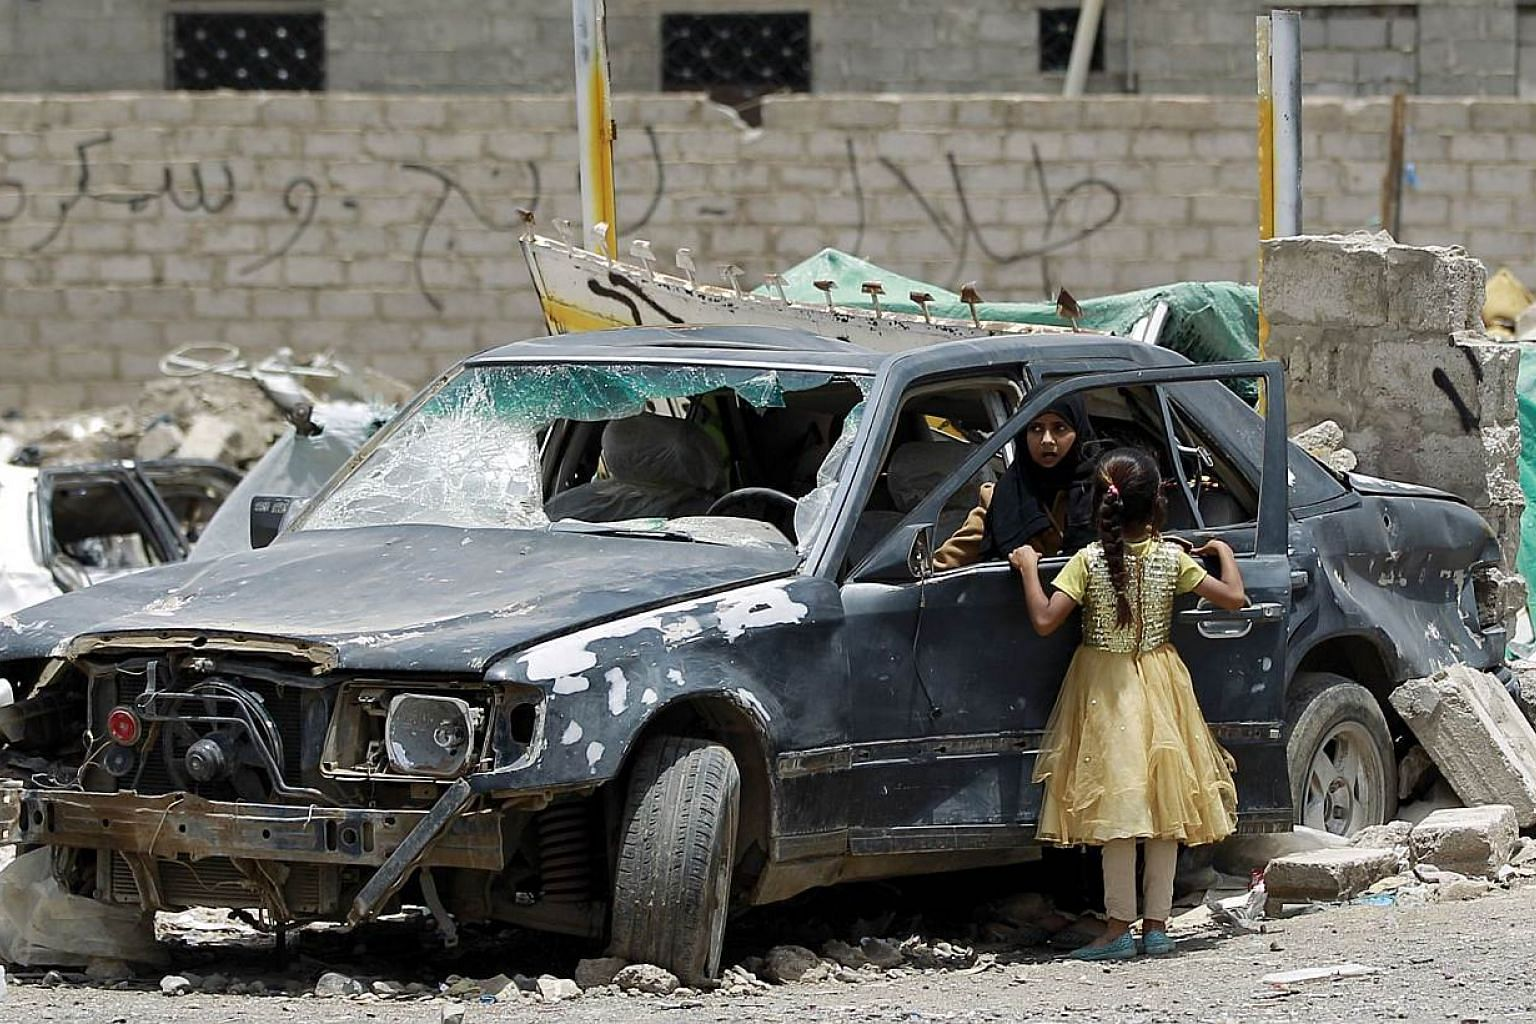 A Yemeni woman inpecting a damaged car in a residential area that was destroyed by Saudi-led air strike last month, in the capital Sanaa, on May 18, 2015. -- PHOTO: AFP